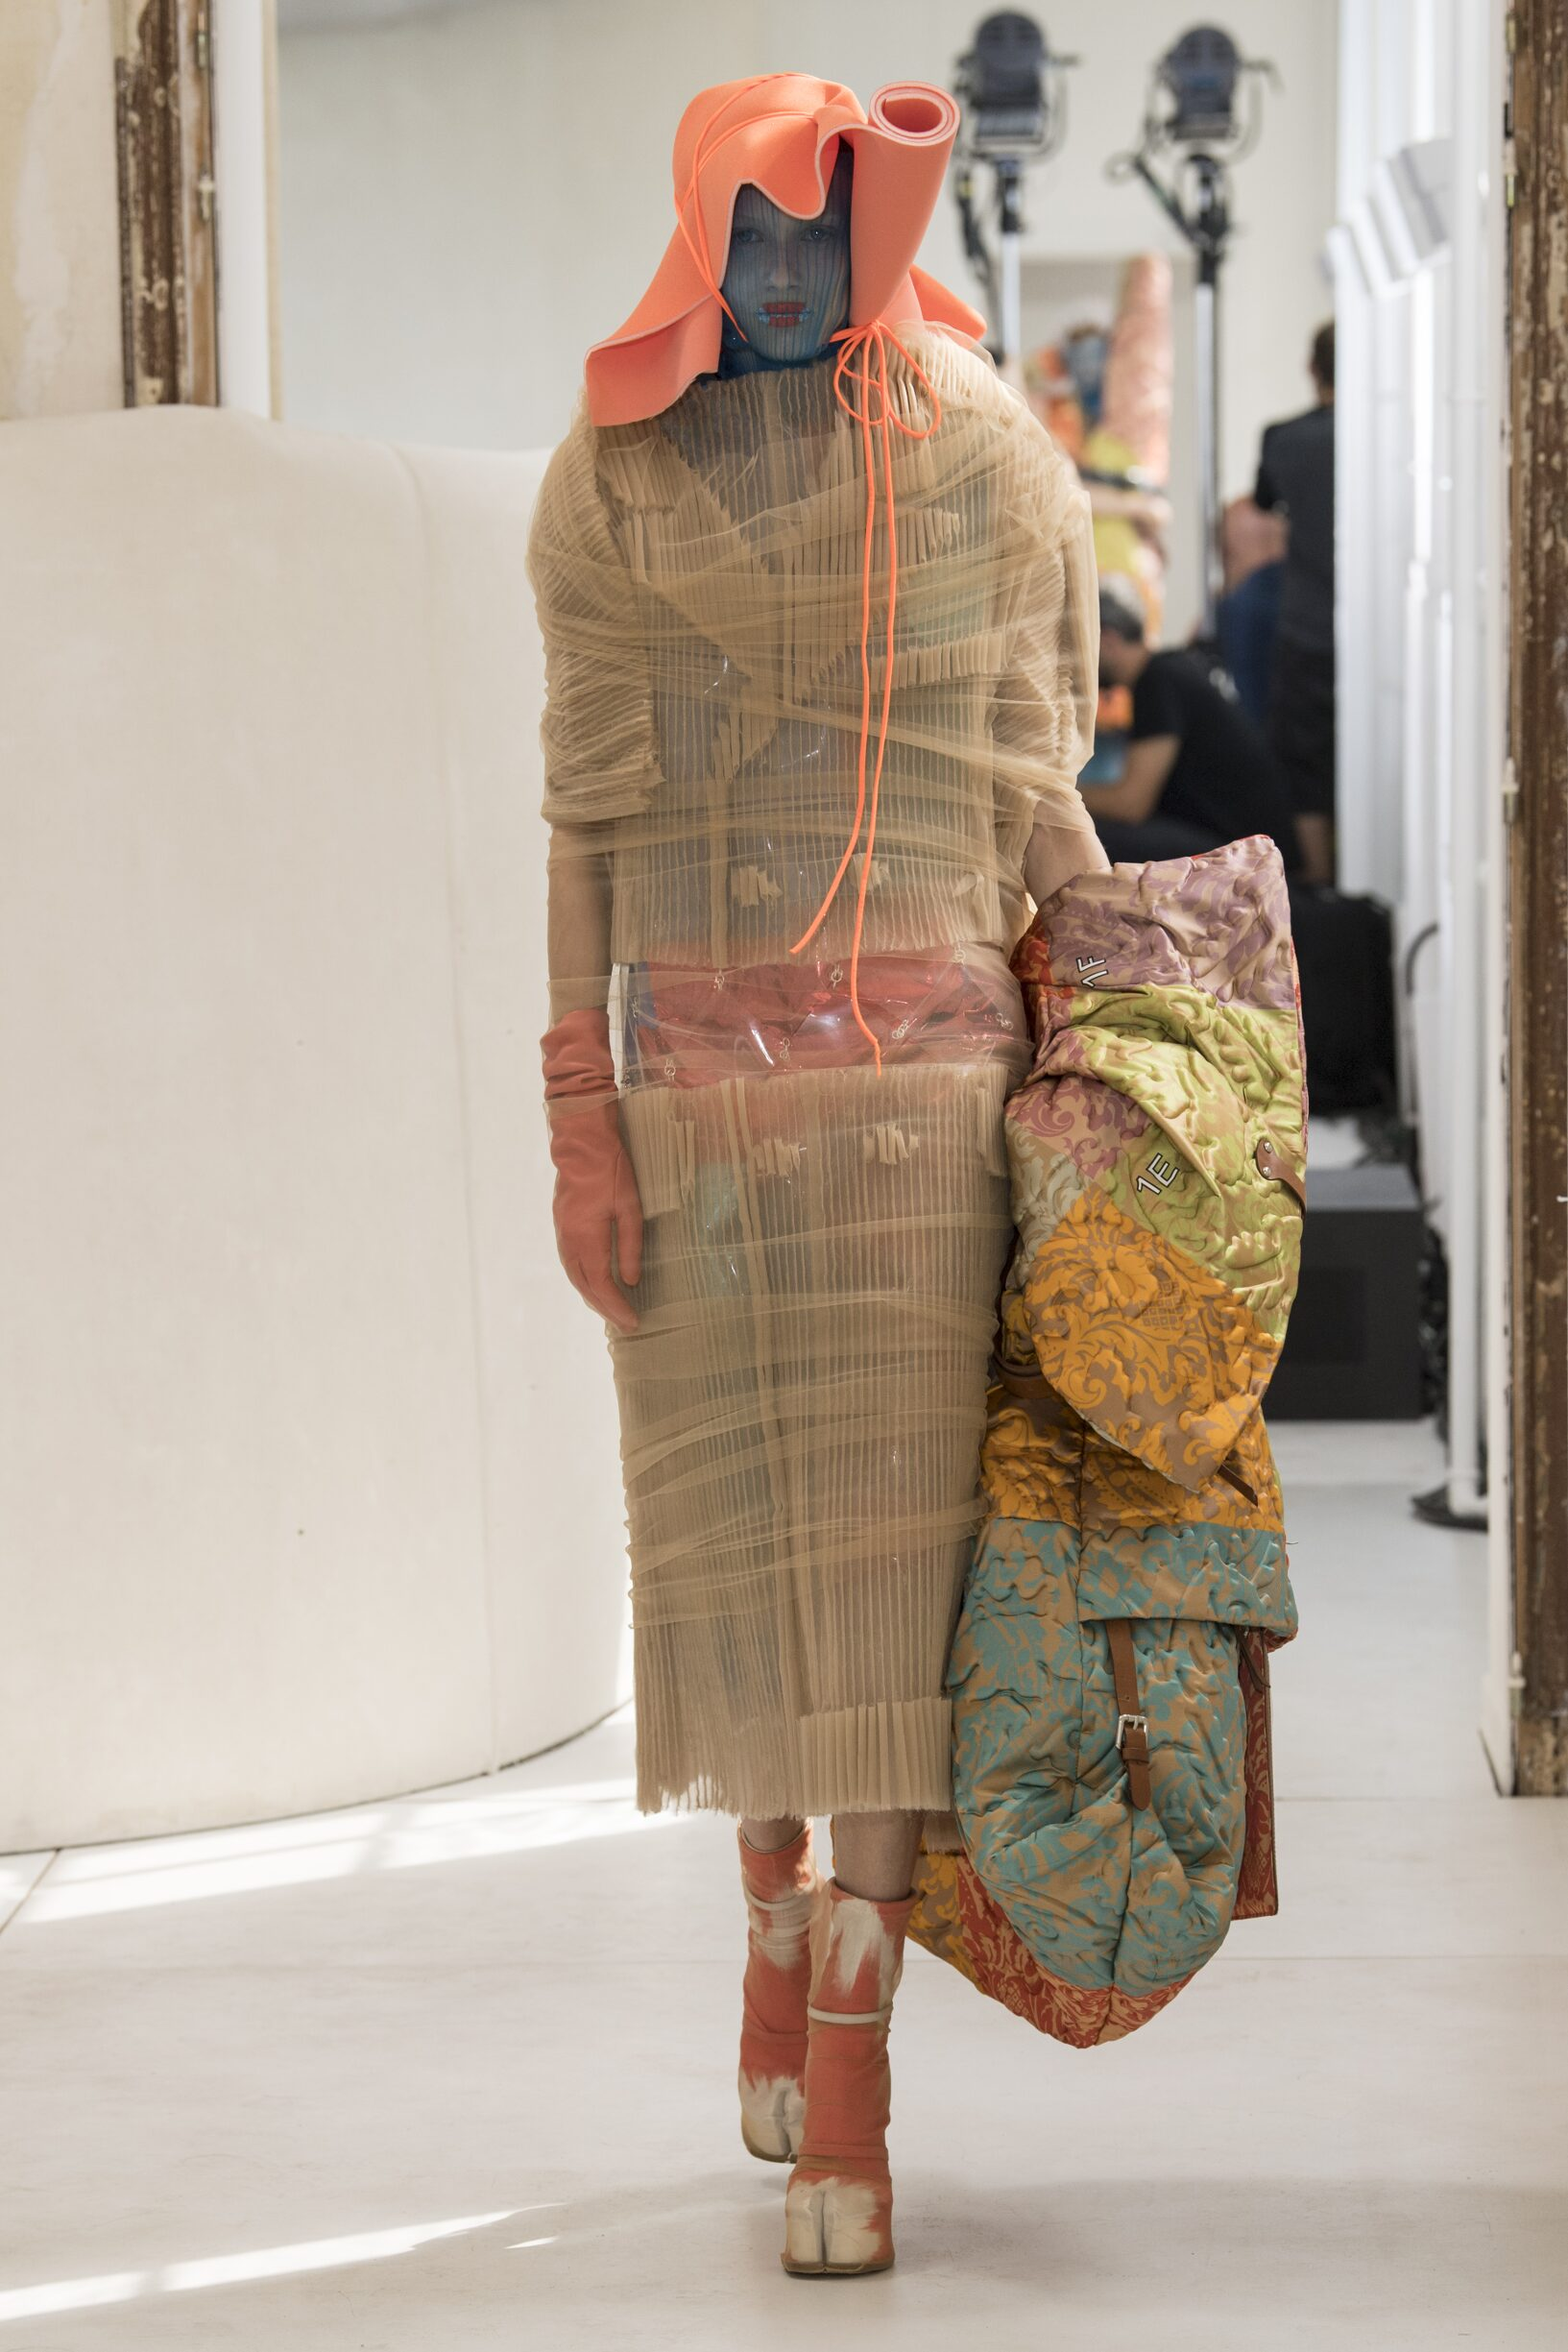 Fashion Show Woman Model Maison Margiela Artisanal Catwalk